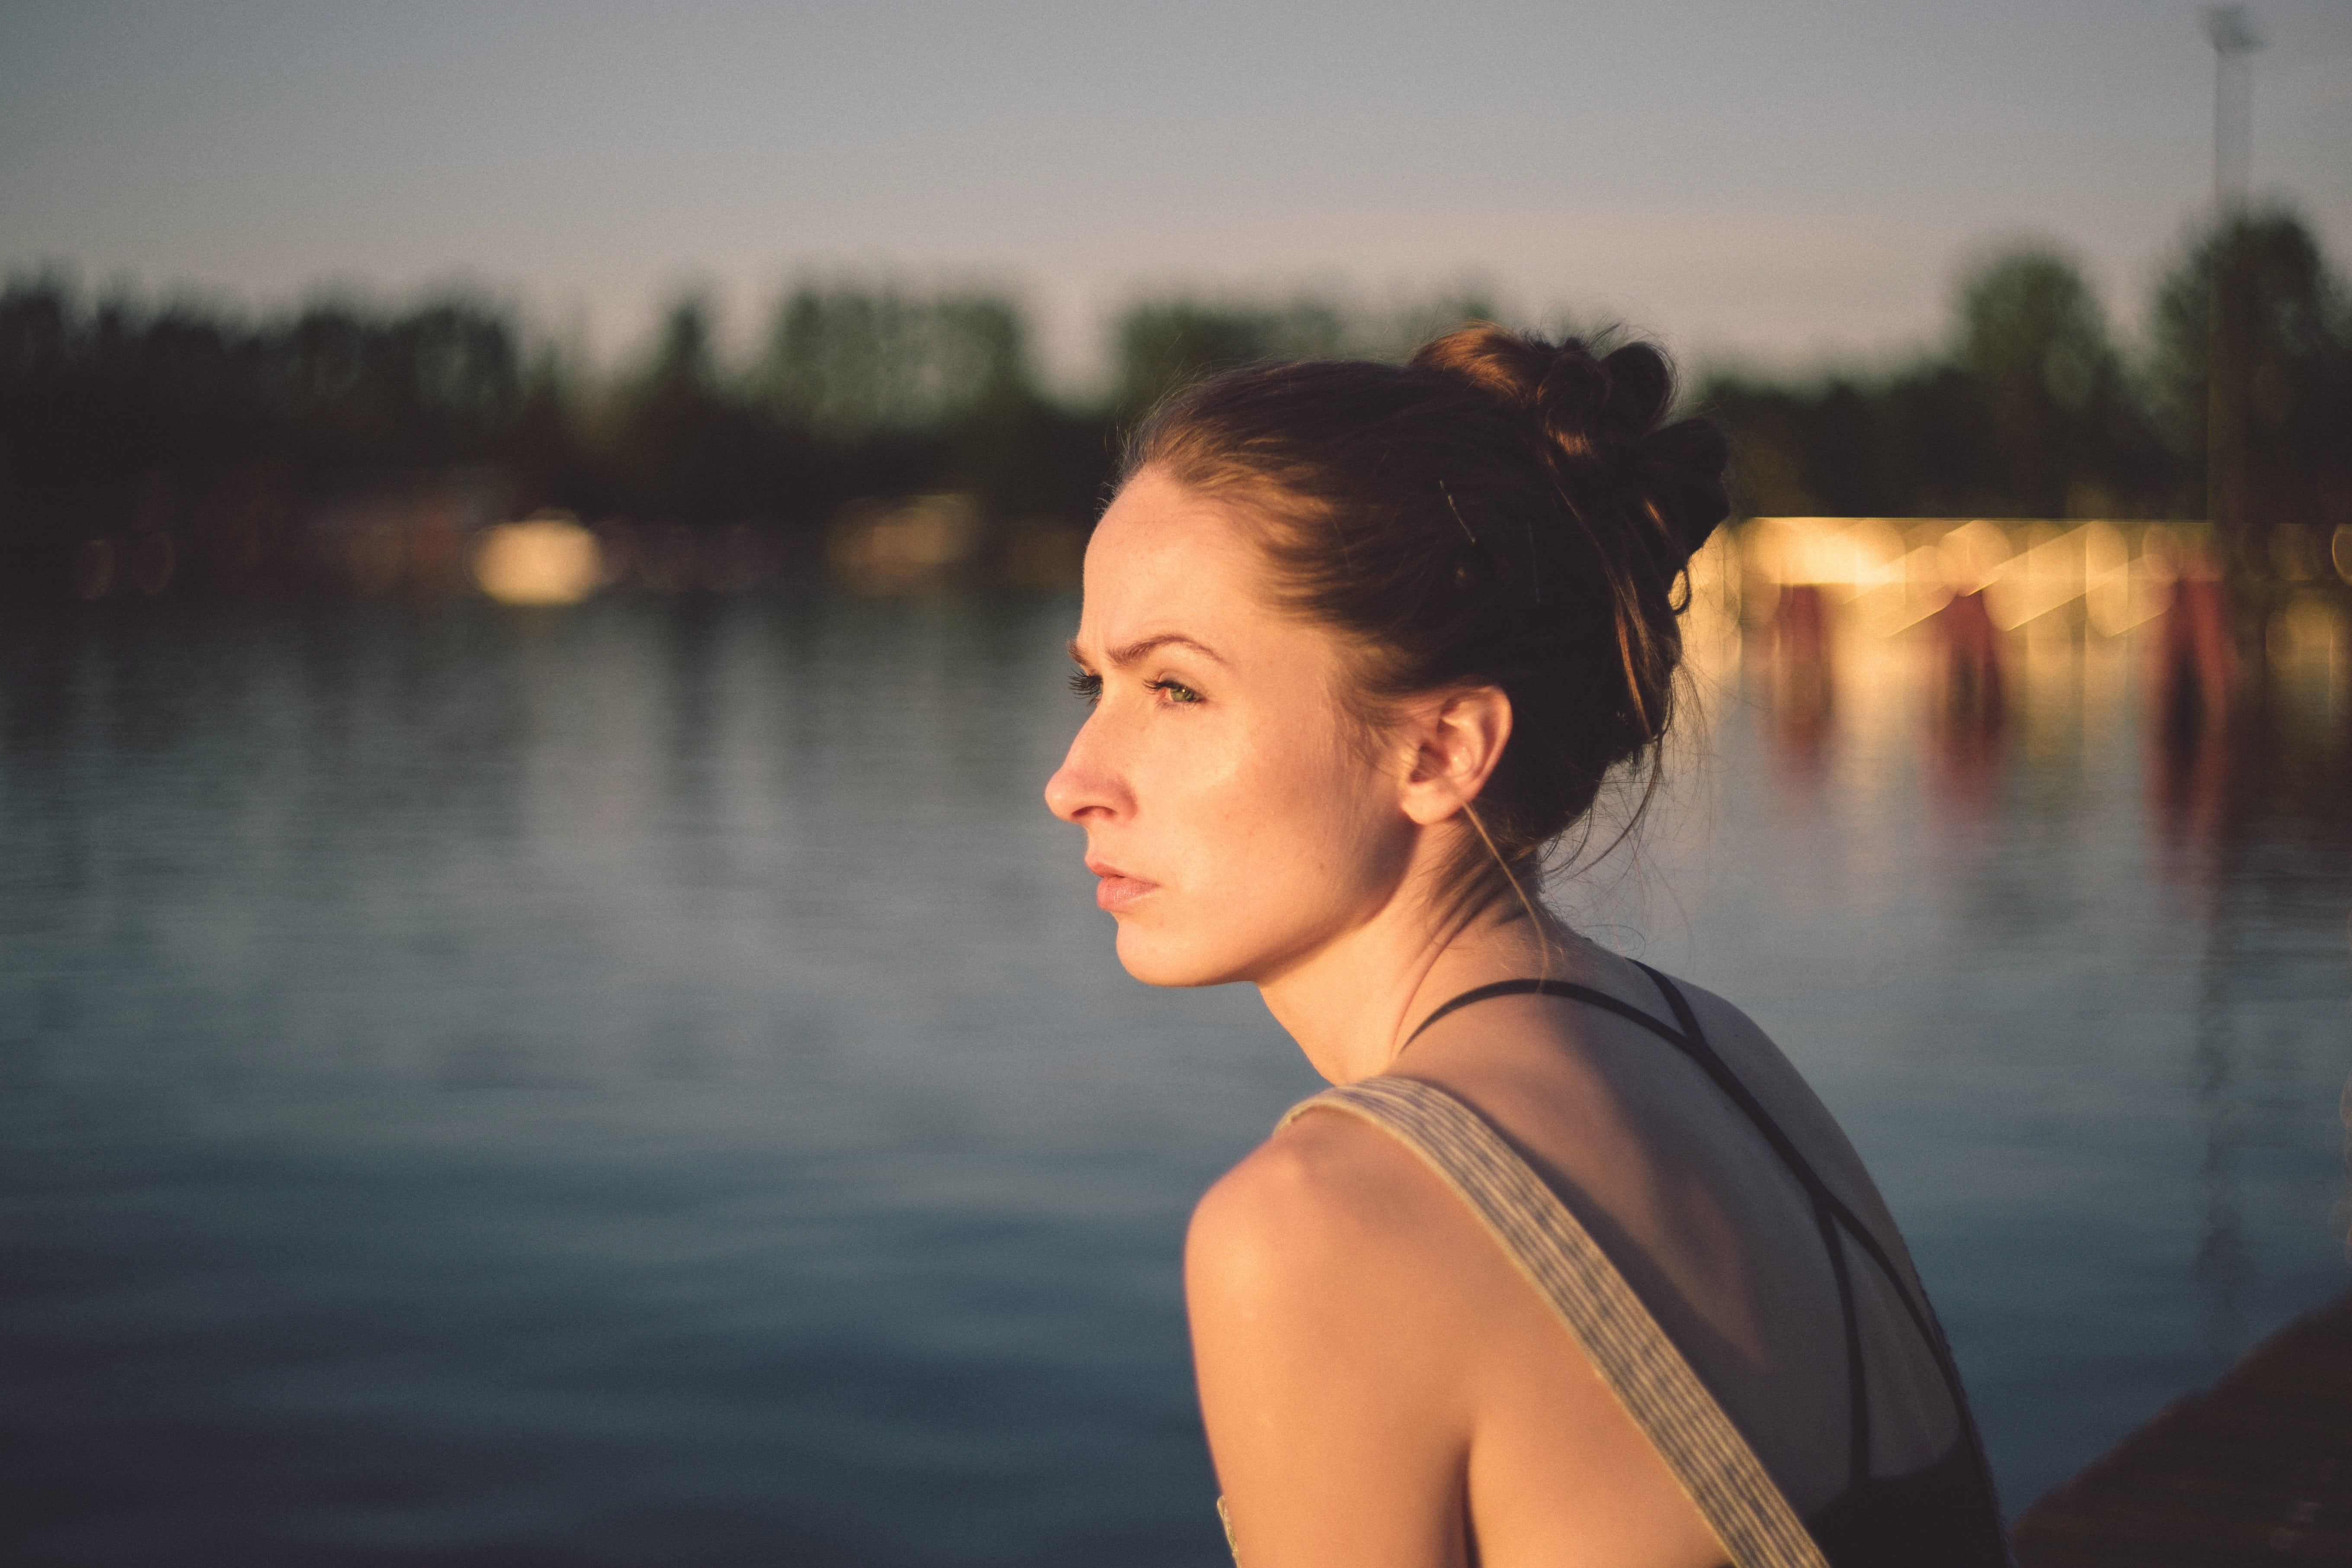 healing from depression woman watch sunset